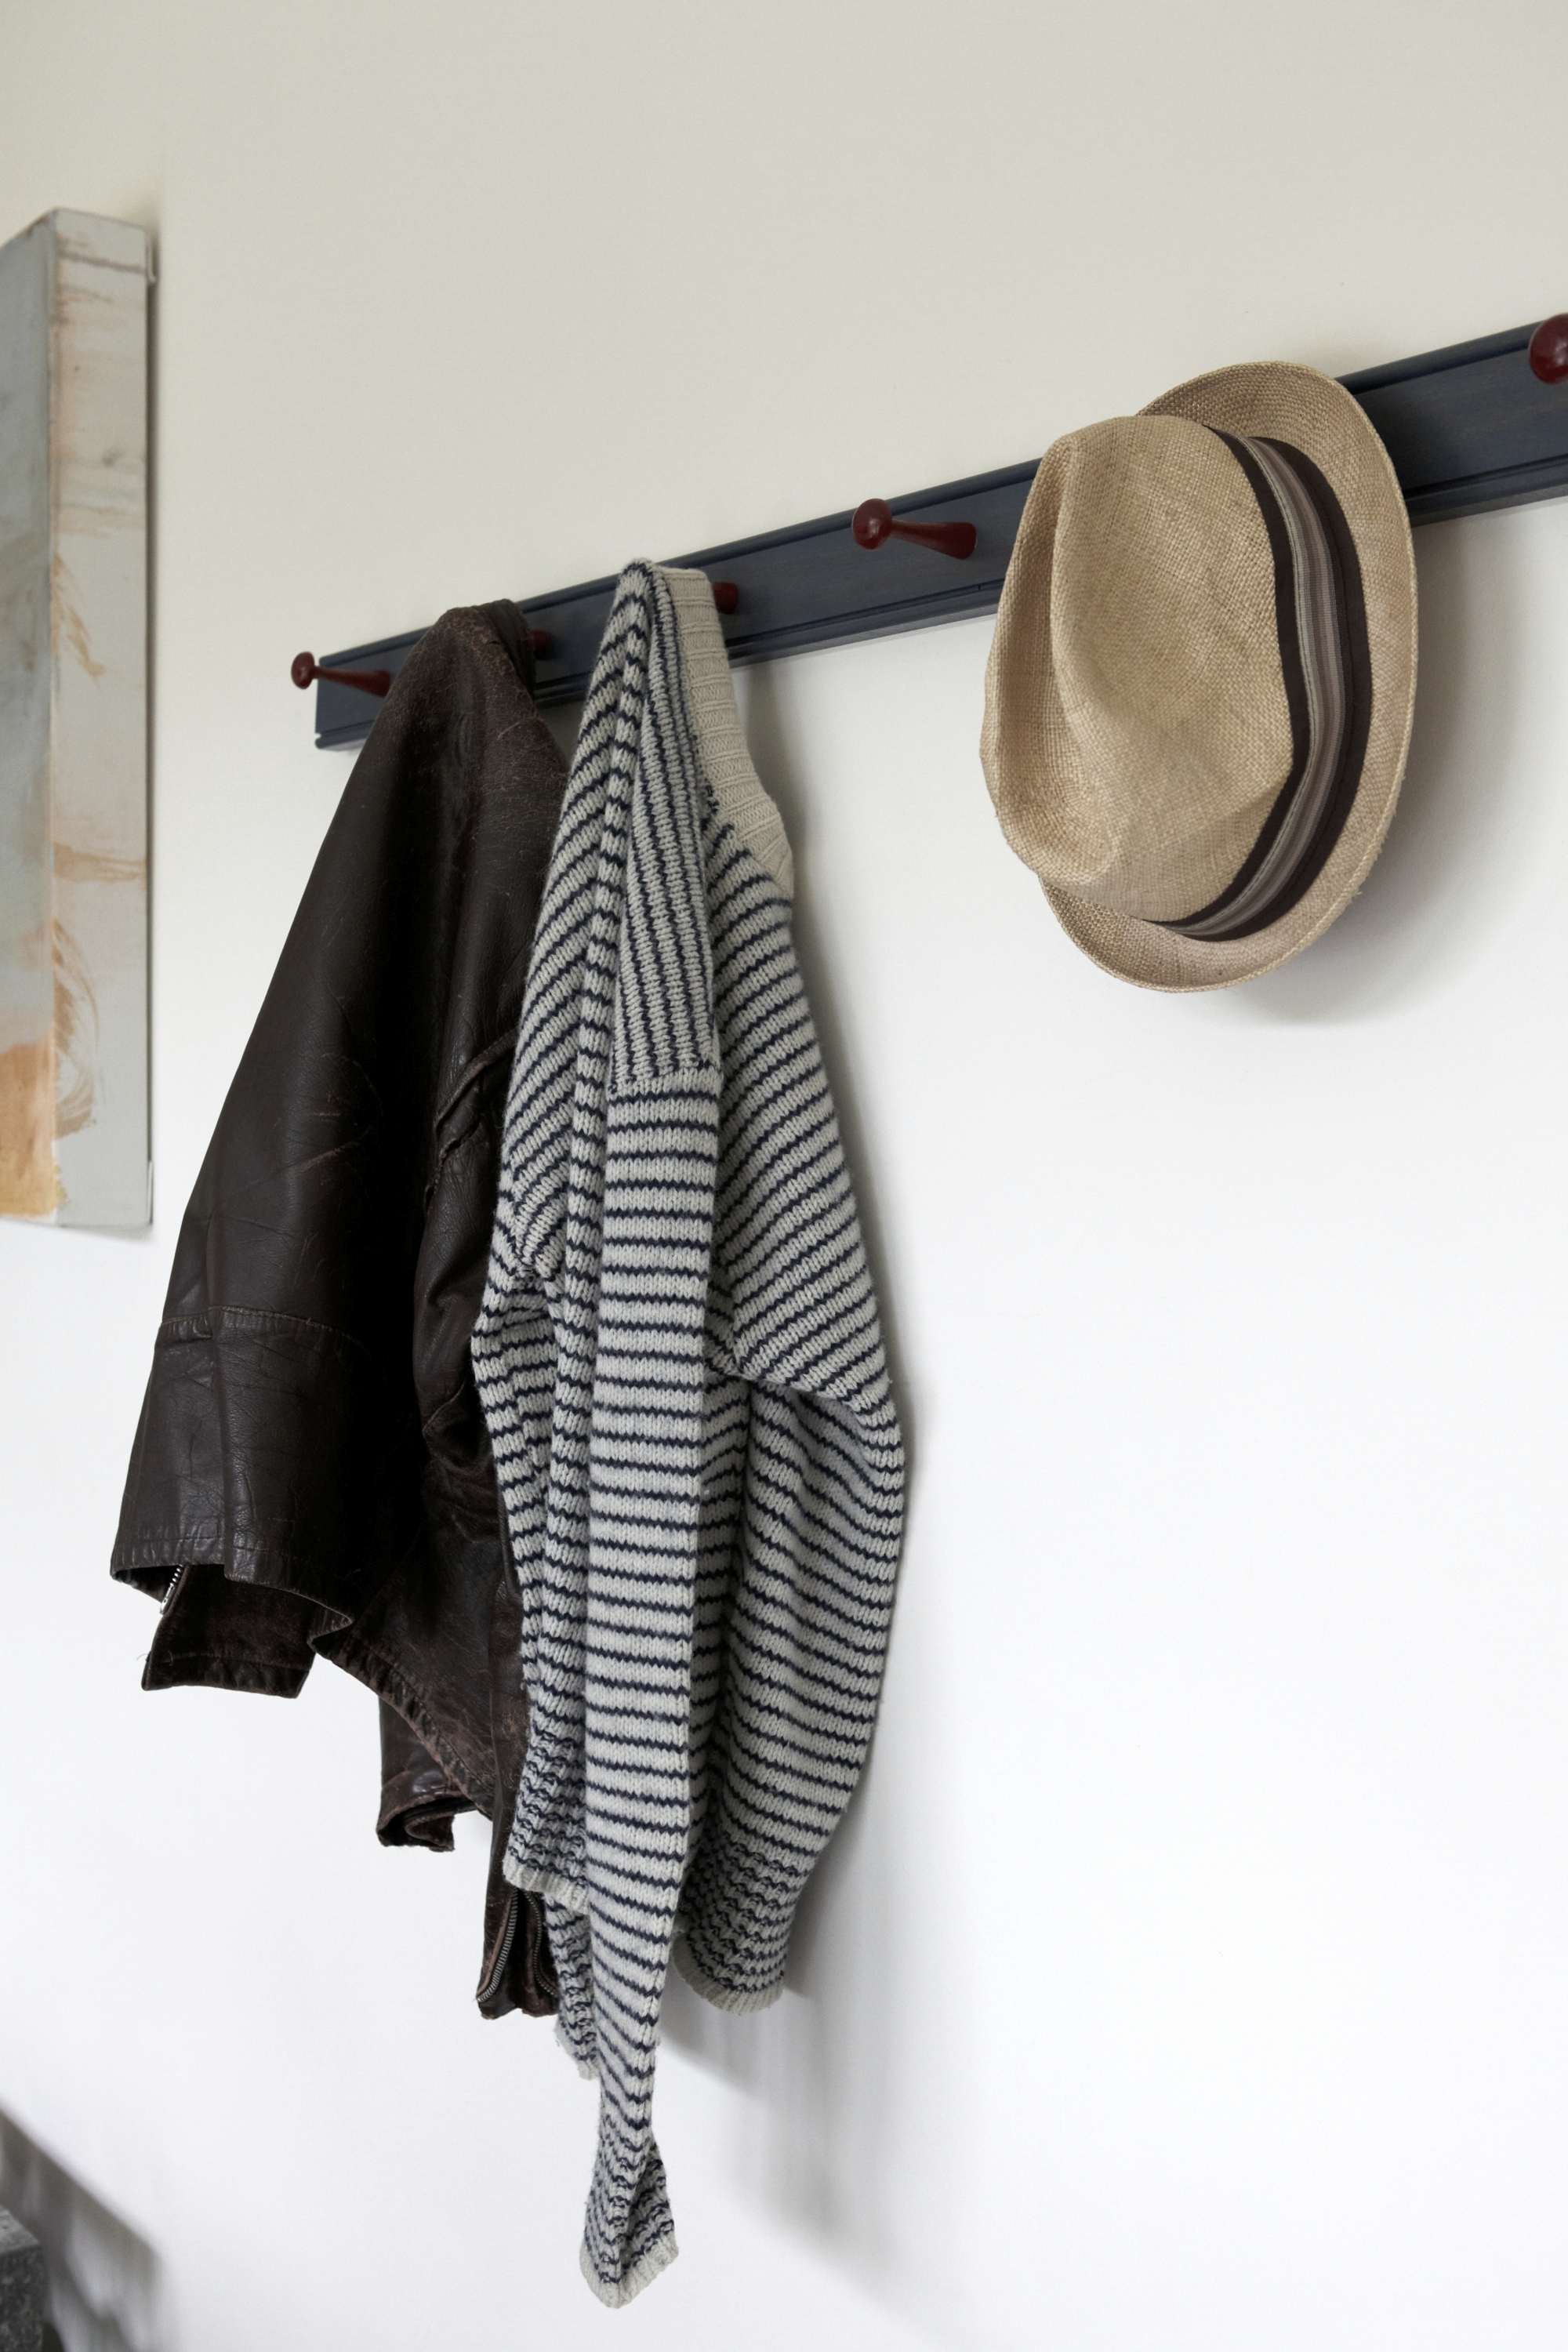 Confluence House Coat Rack Detail